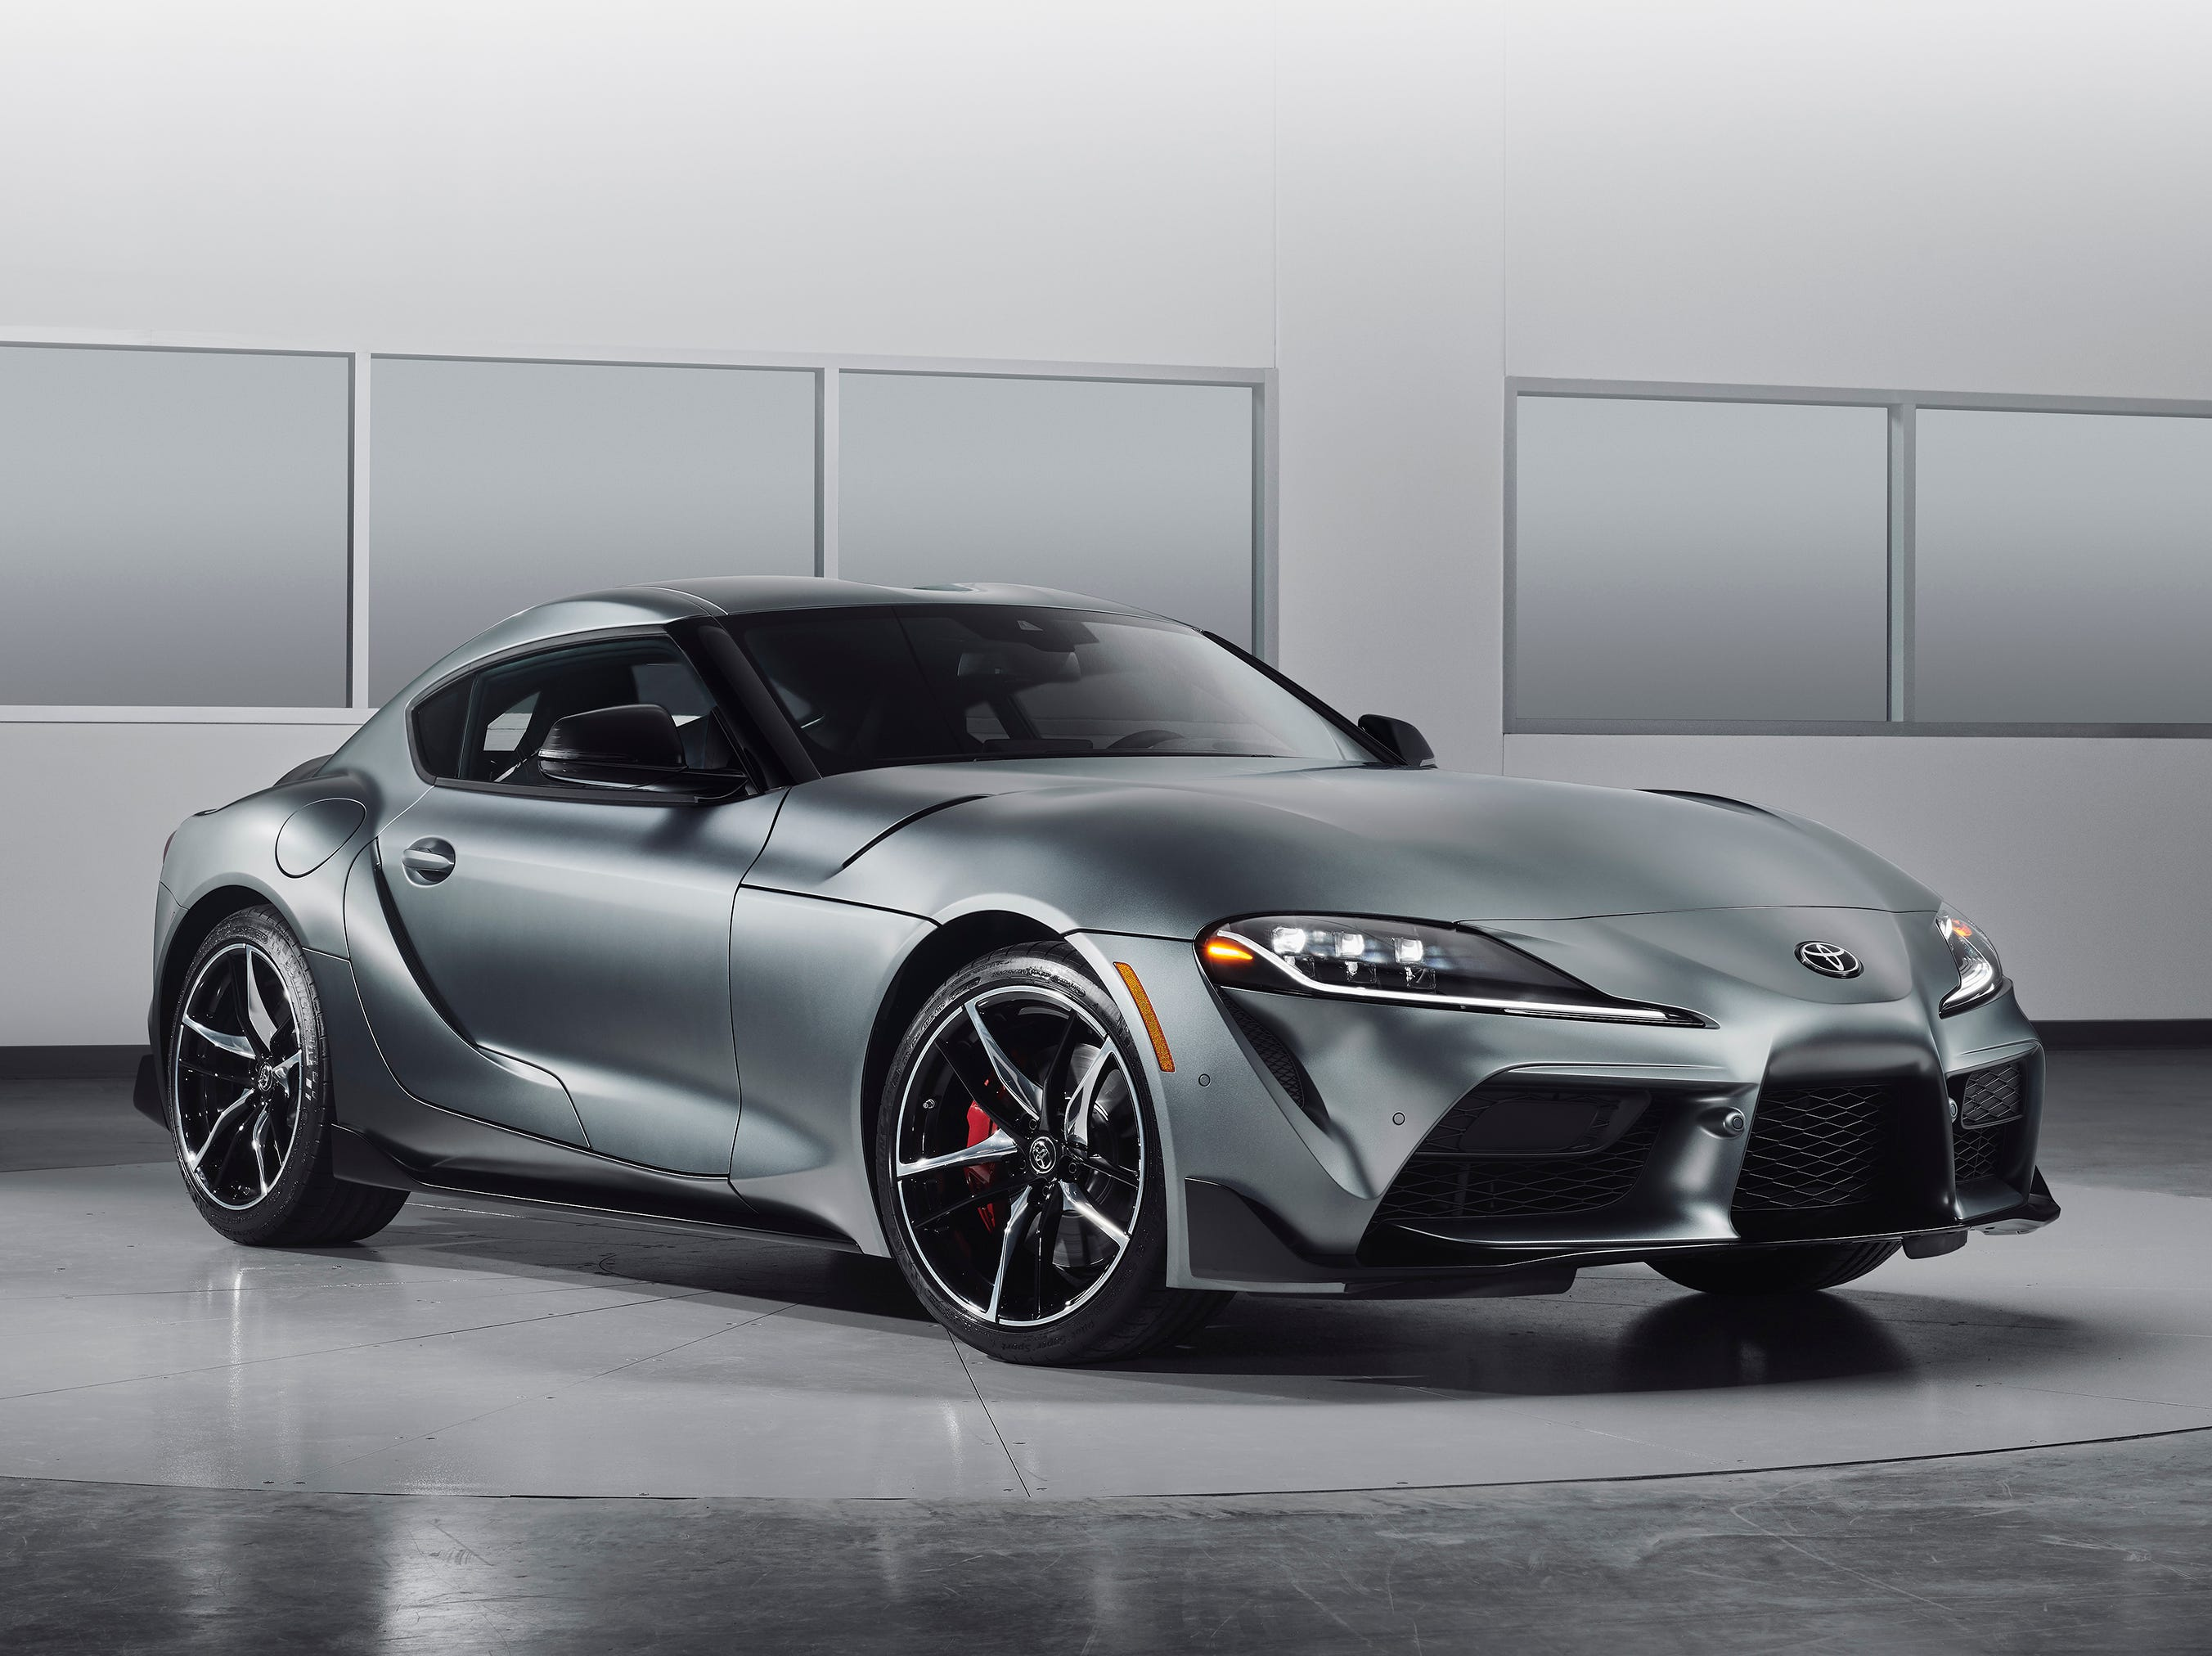 """""""The 2020 Supra goes on sale in summer of 2019 and will be available in two grades — 3.0 and 3.0 Premium —  as well as a Launch Edition which will be based on the 3.0 Premium grade."""""""